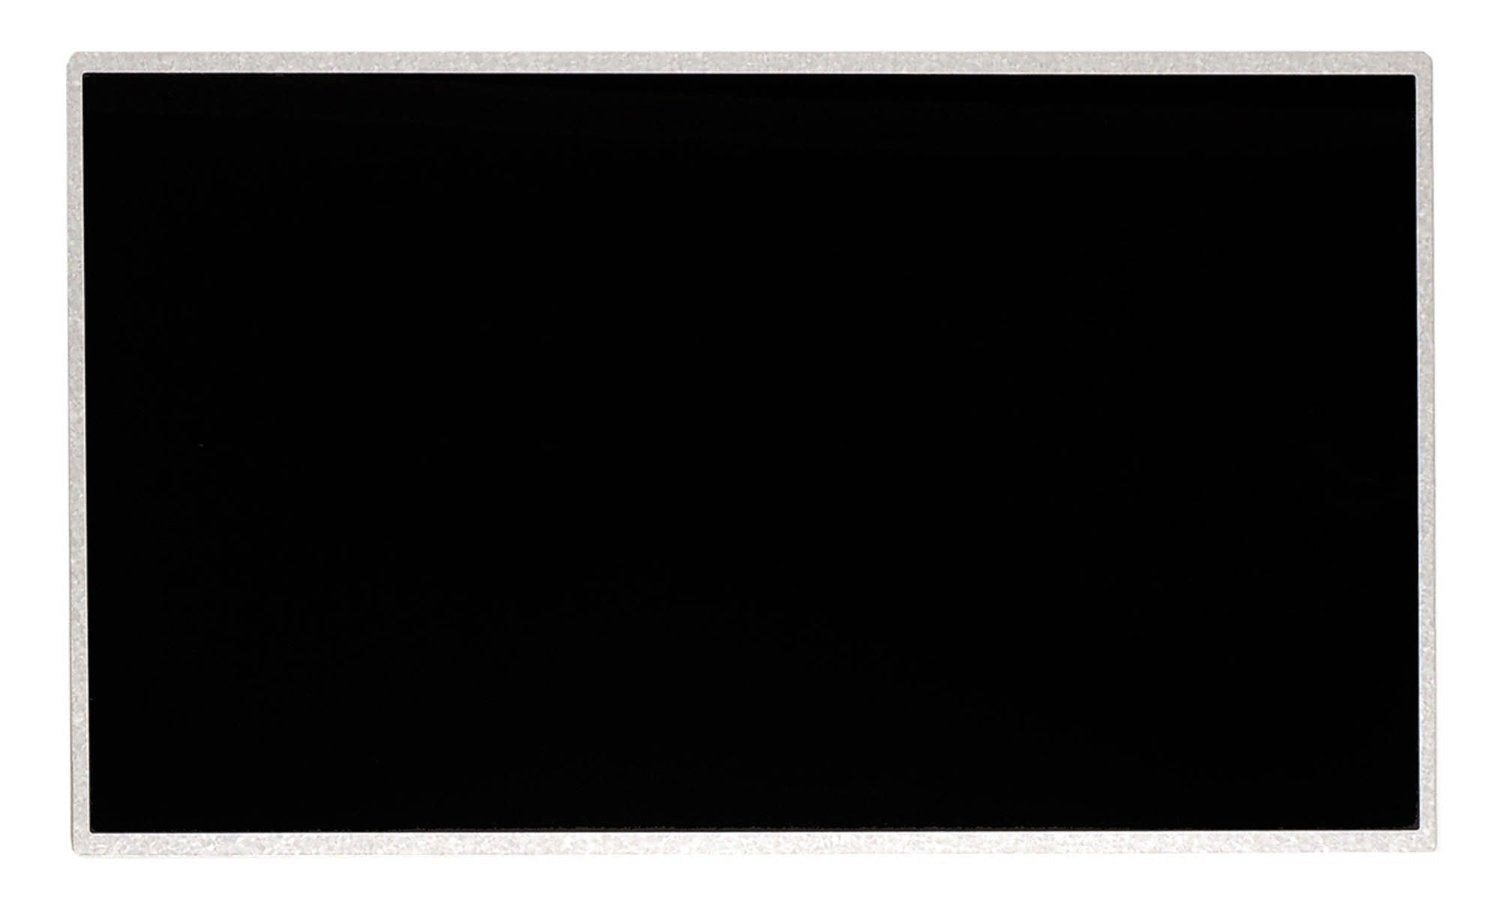 "ACER ASPIRE 5733Z-4851 REPLACEMENT LAPTOP 15.6"" LCD LED Display Screen"